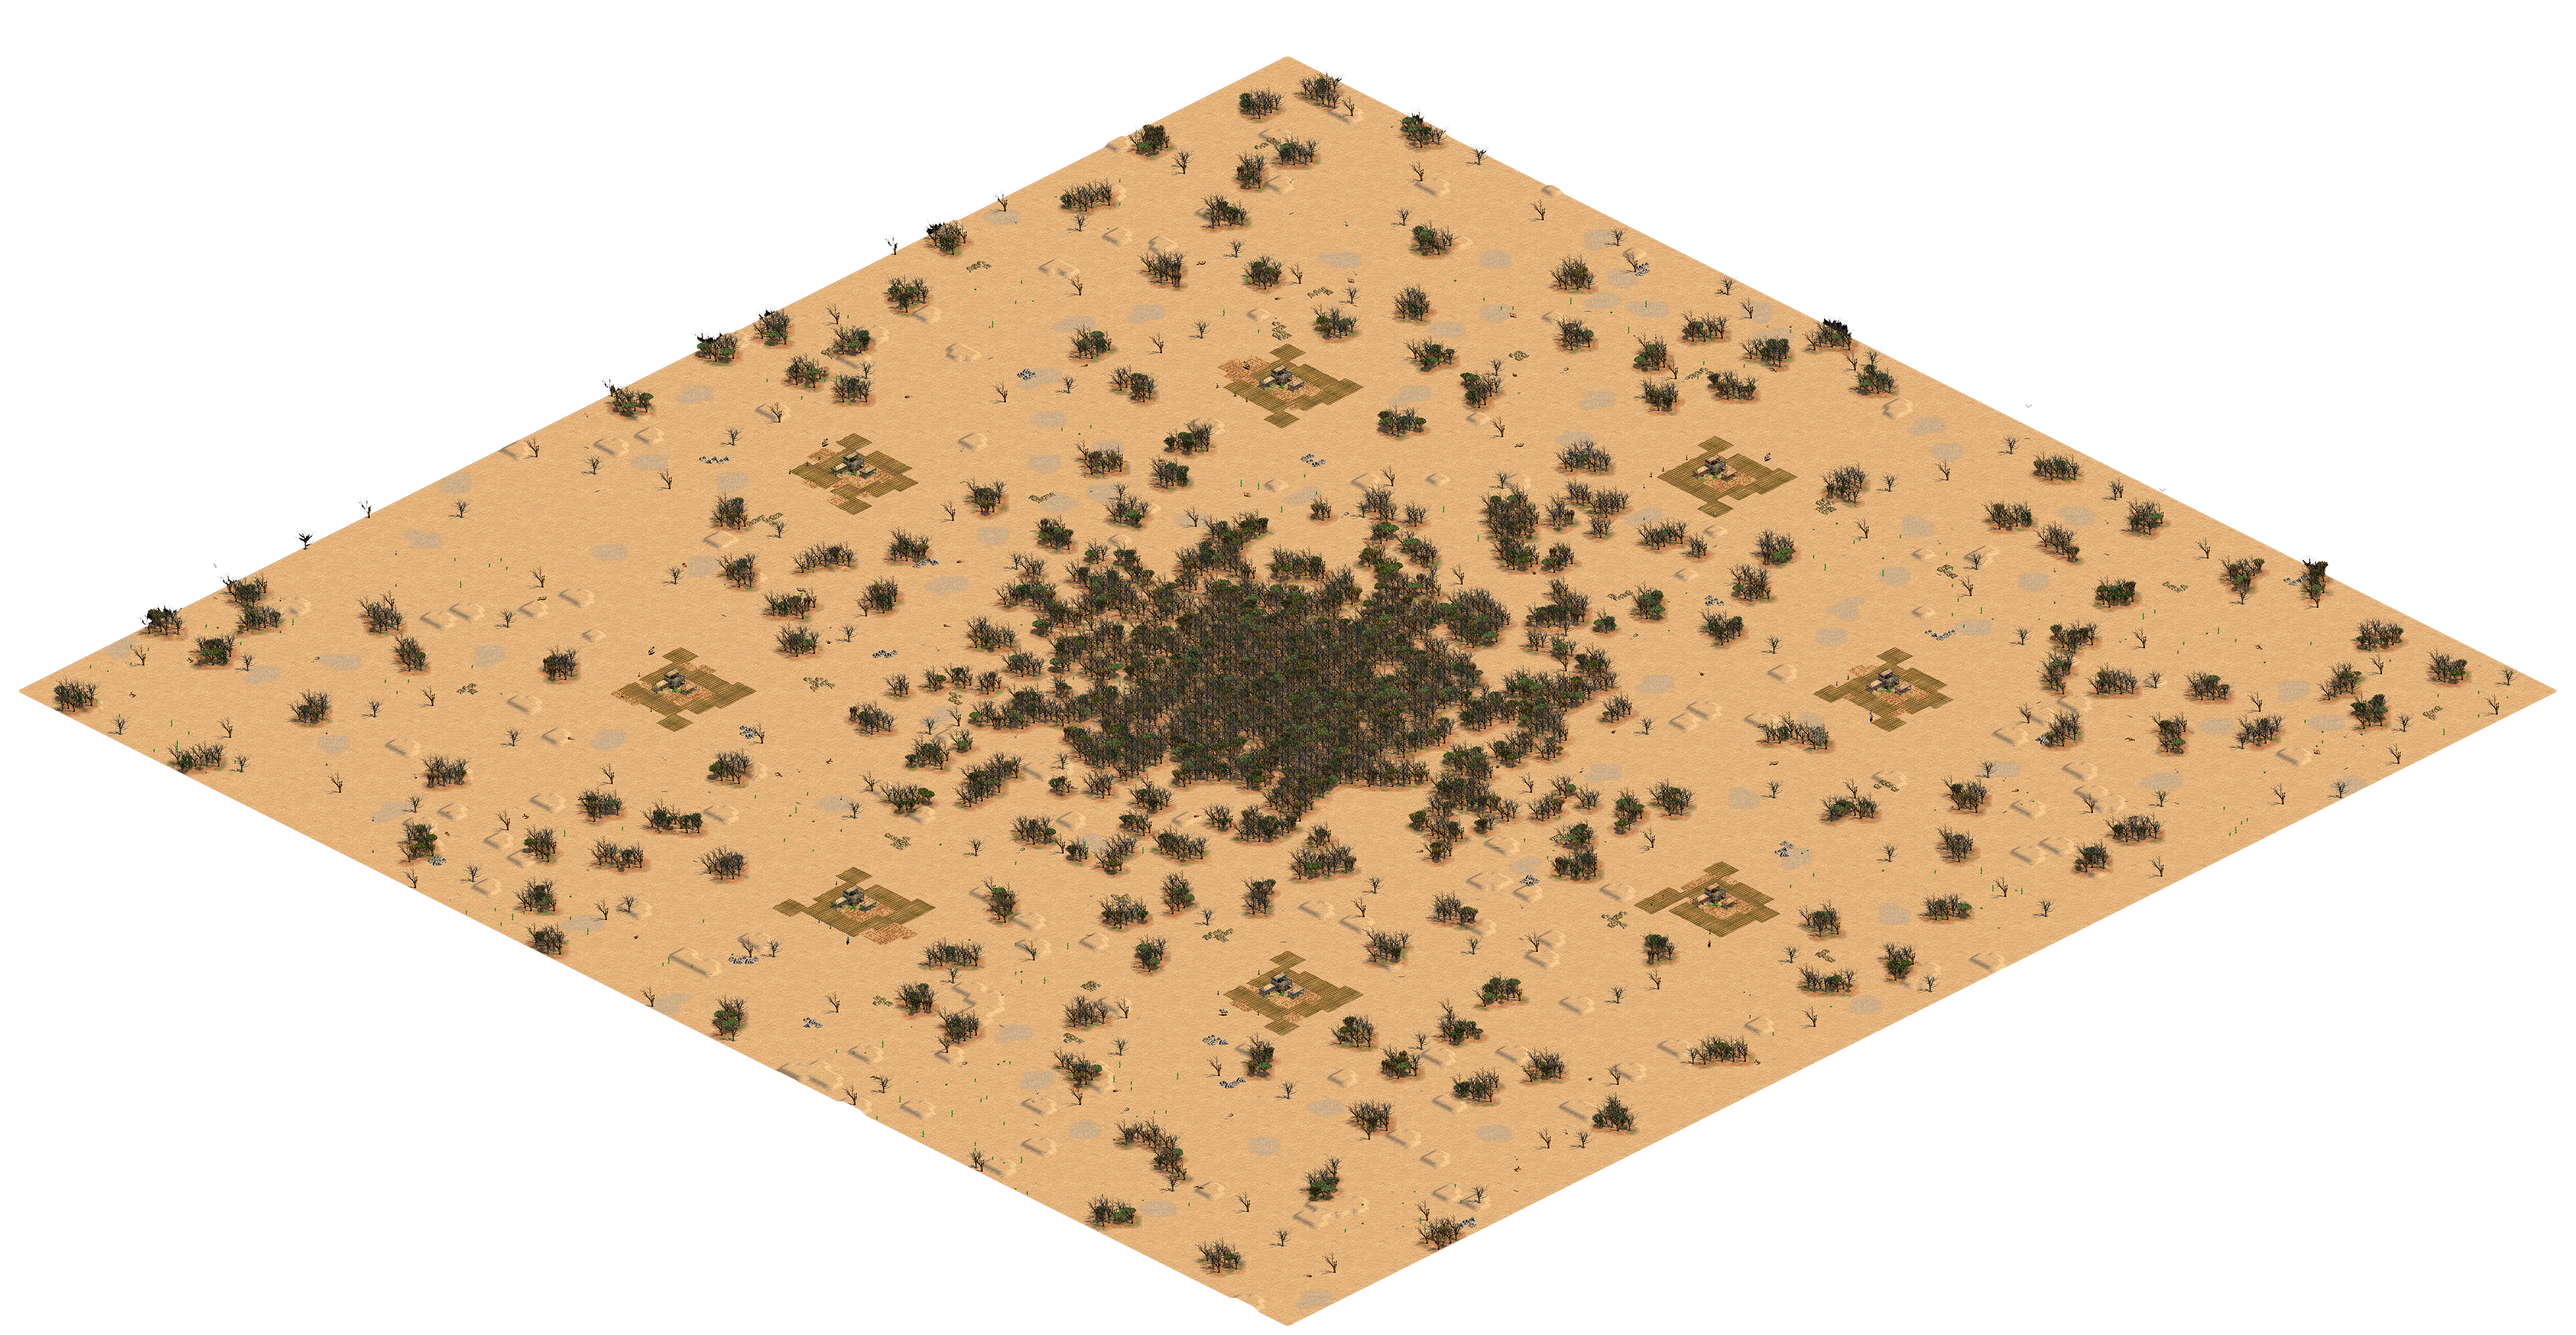 Dustbowl - 8 Player Map.png